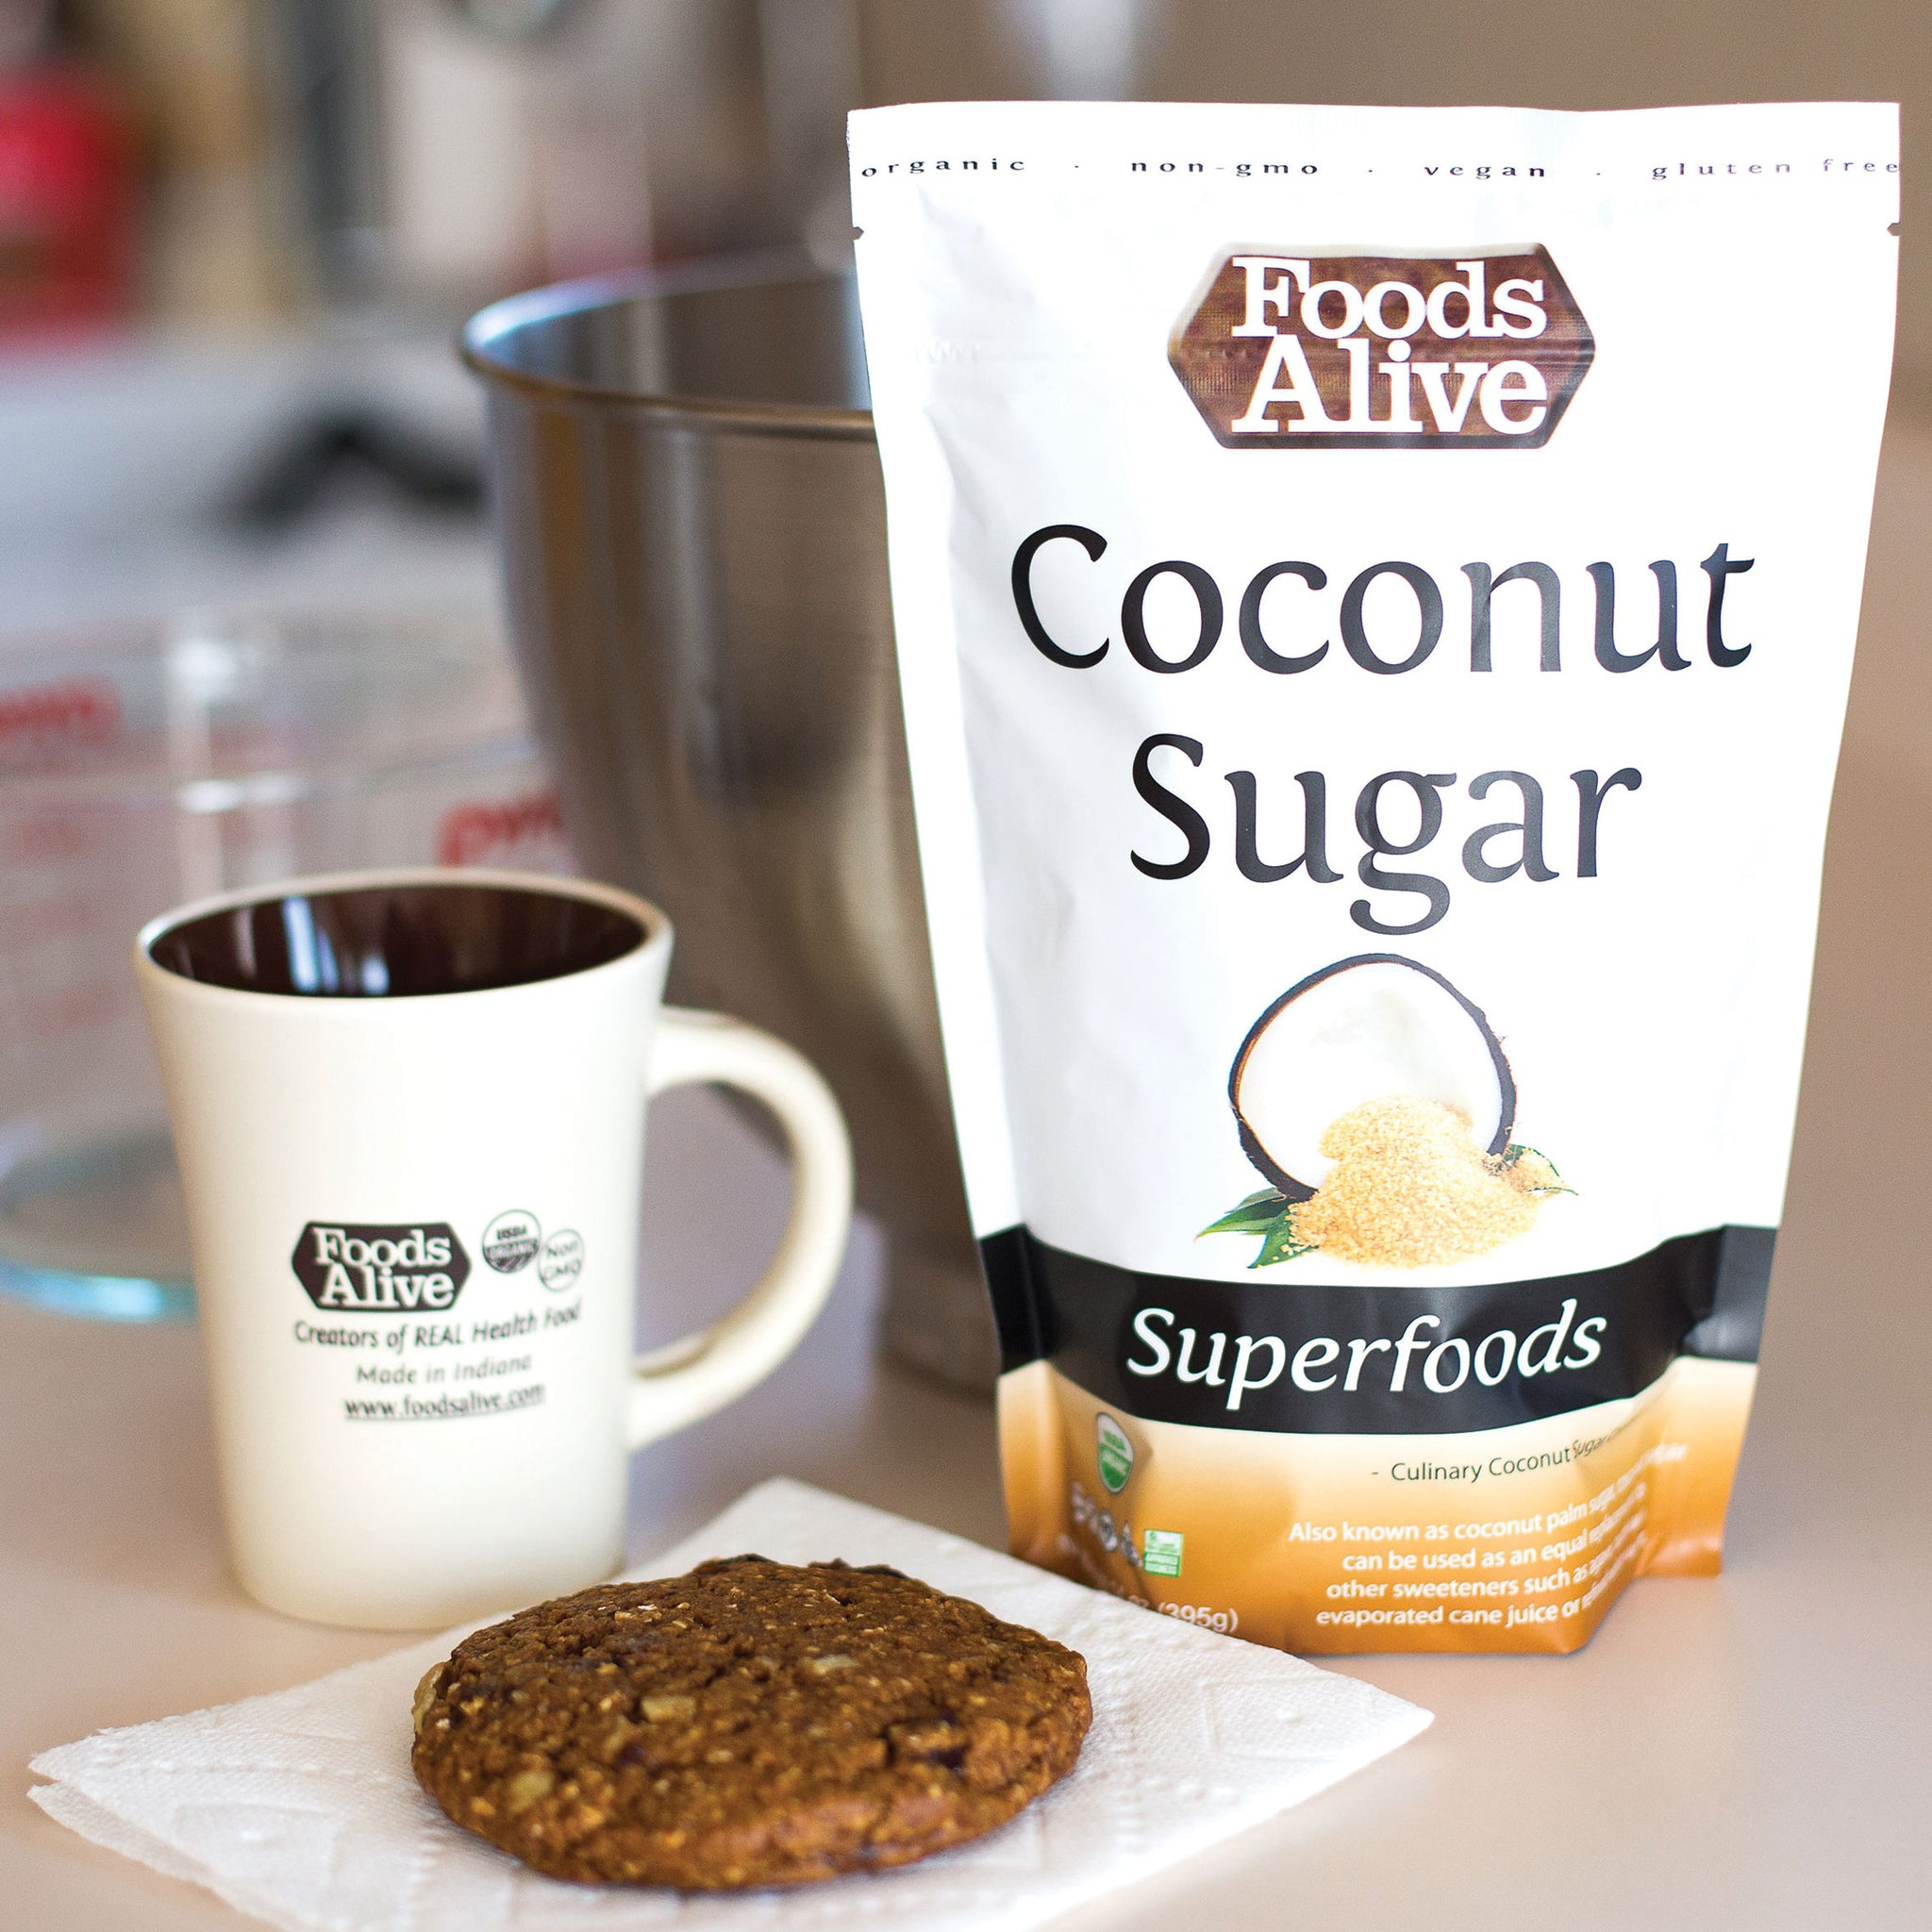 Foods Alive - Organic Coconut Sugar - 14 oz